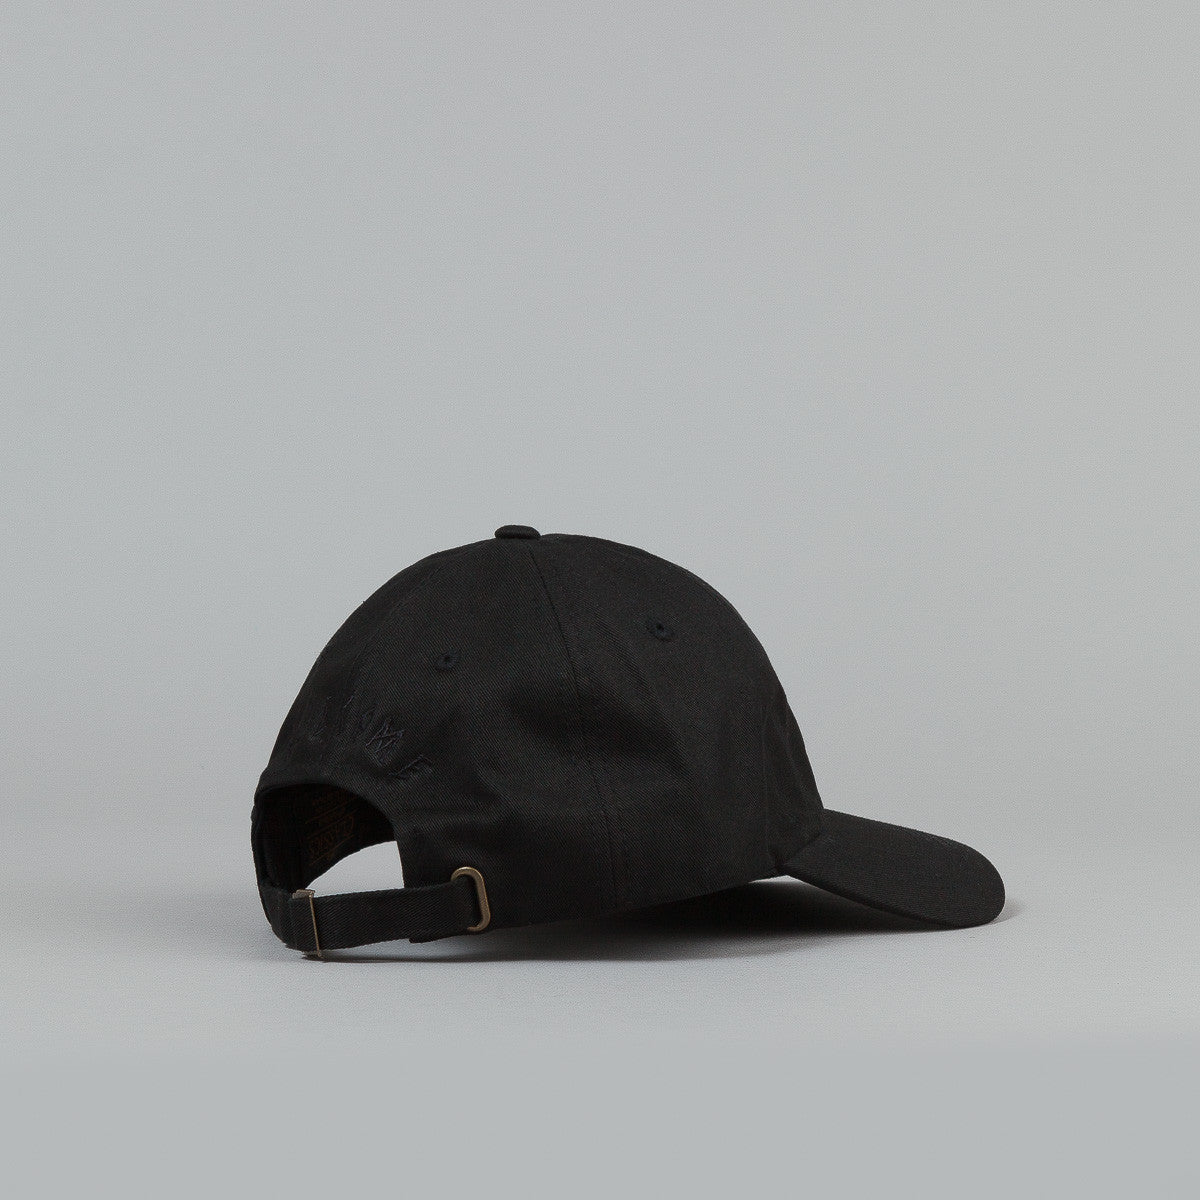 Welcome Rocking Dog Slider Cap - Black / Black